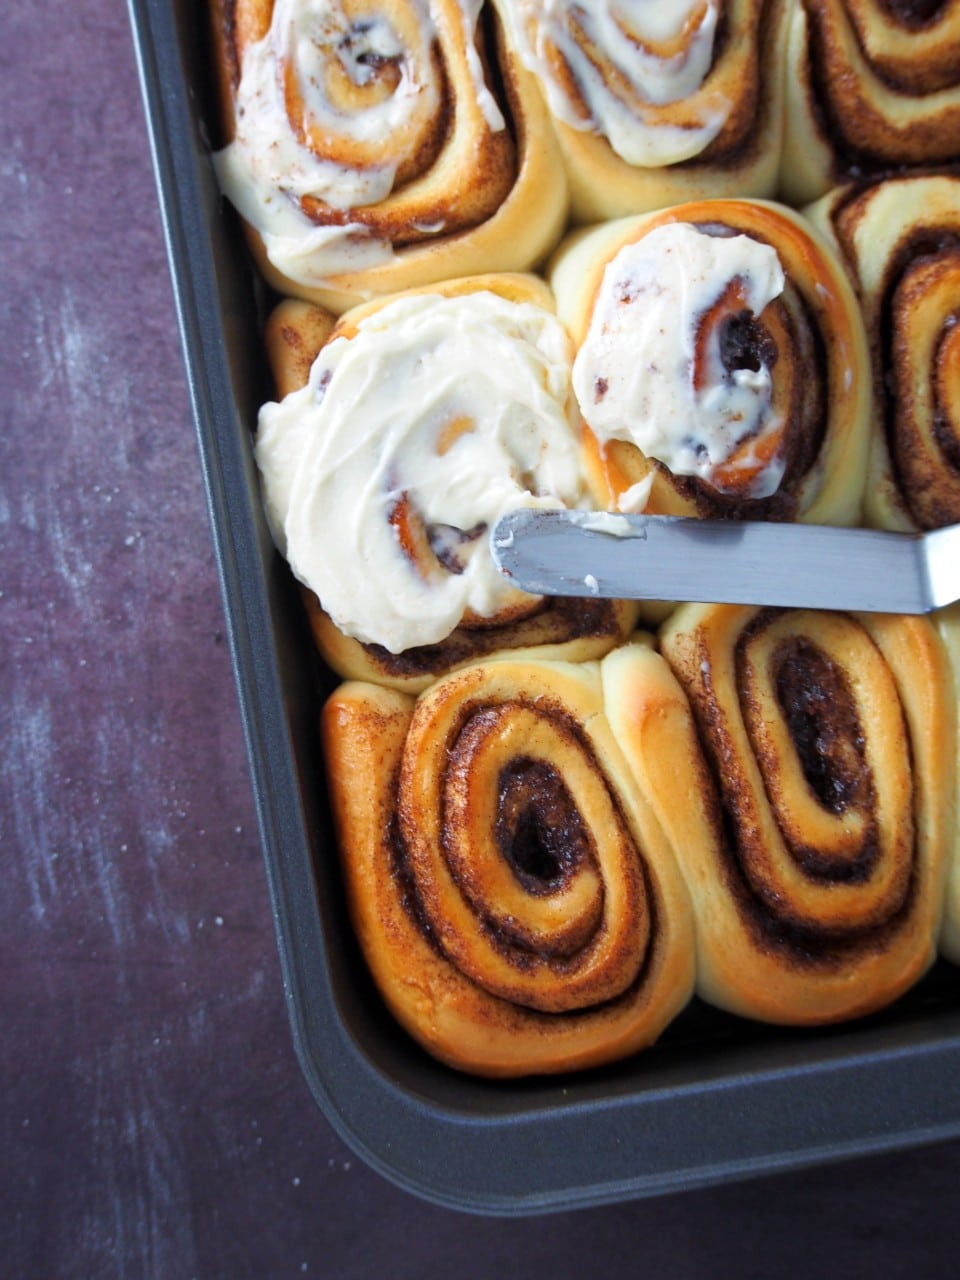 Slathering the cinnamon rolls with cream cheese icing.